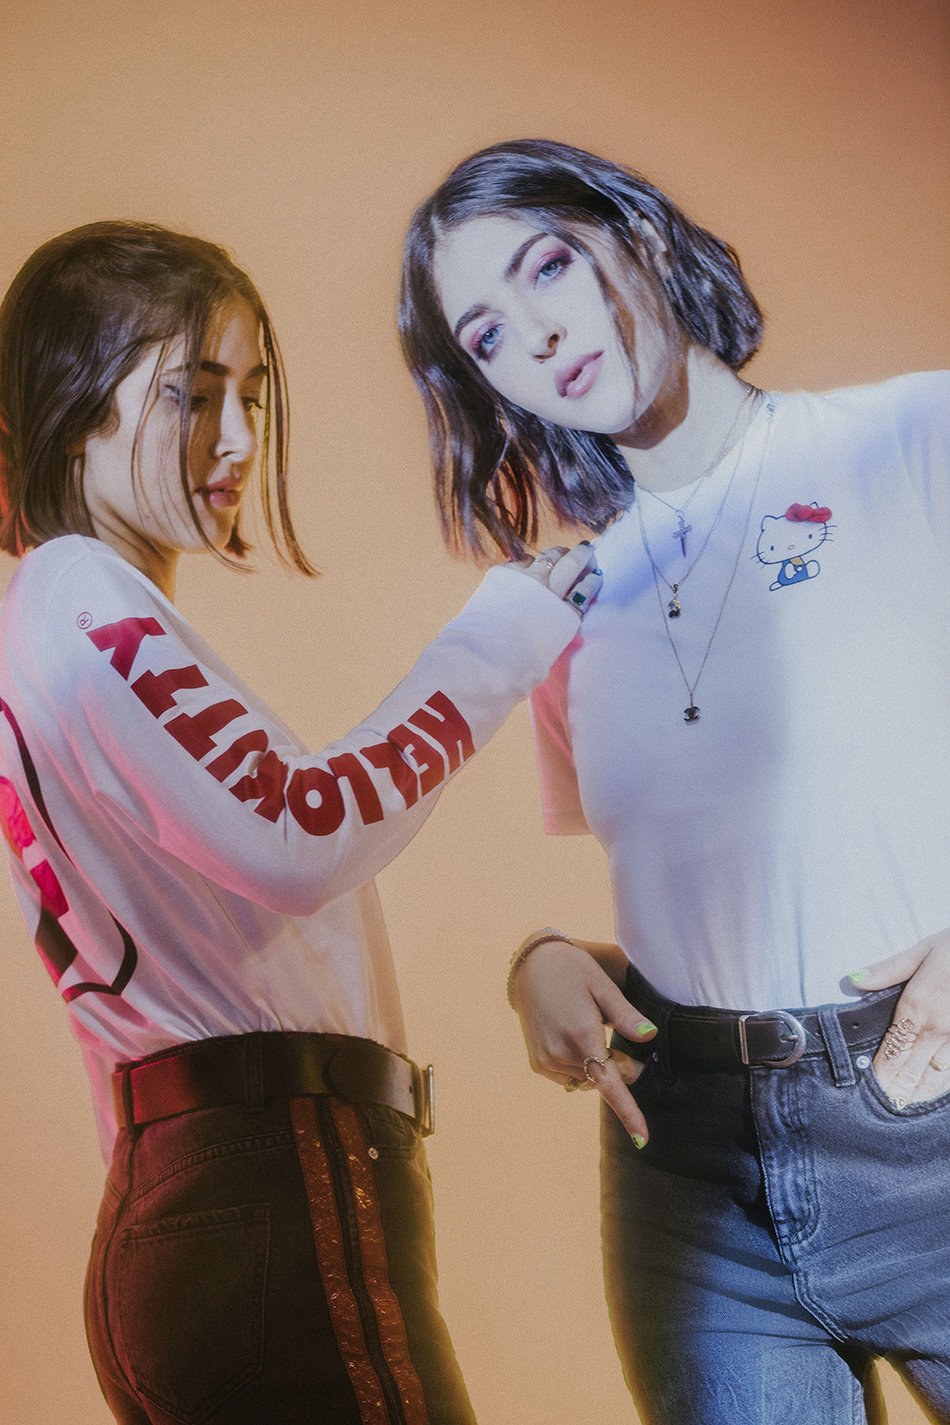 094b0ea6994f FILA x Sanrio Collection Featuring Hello Kitty Launches at Urban Outfitters